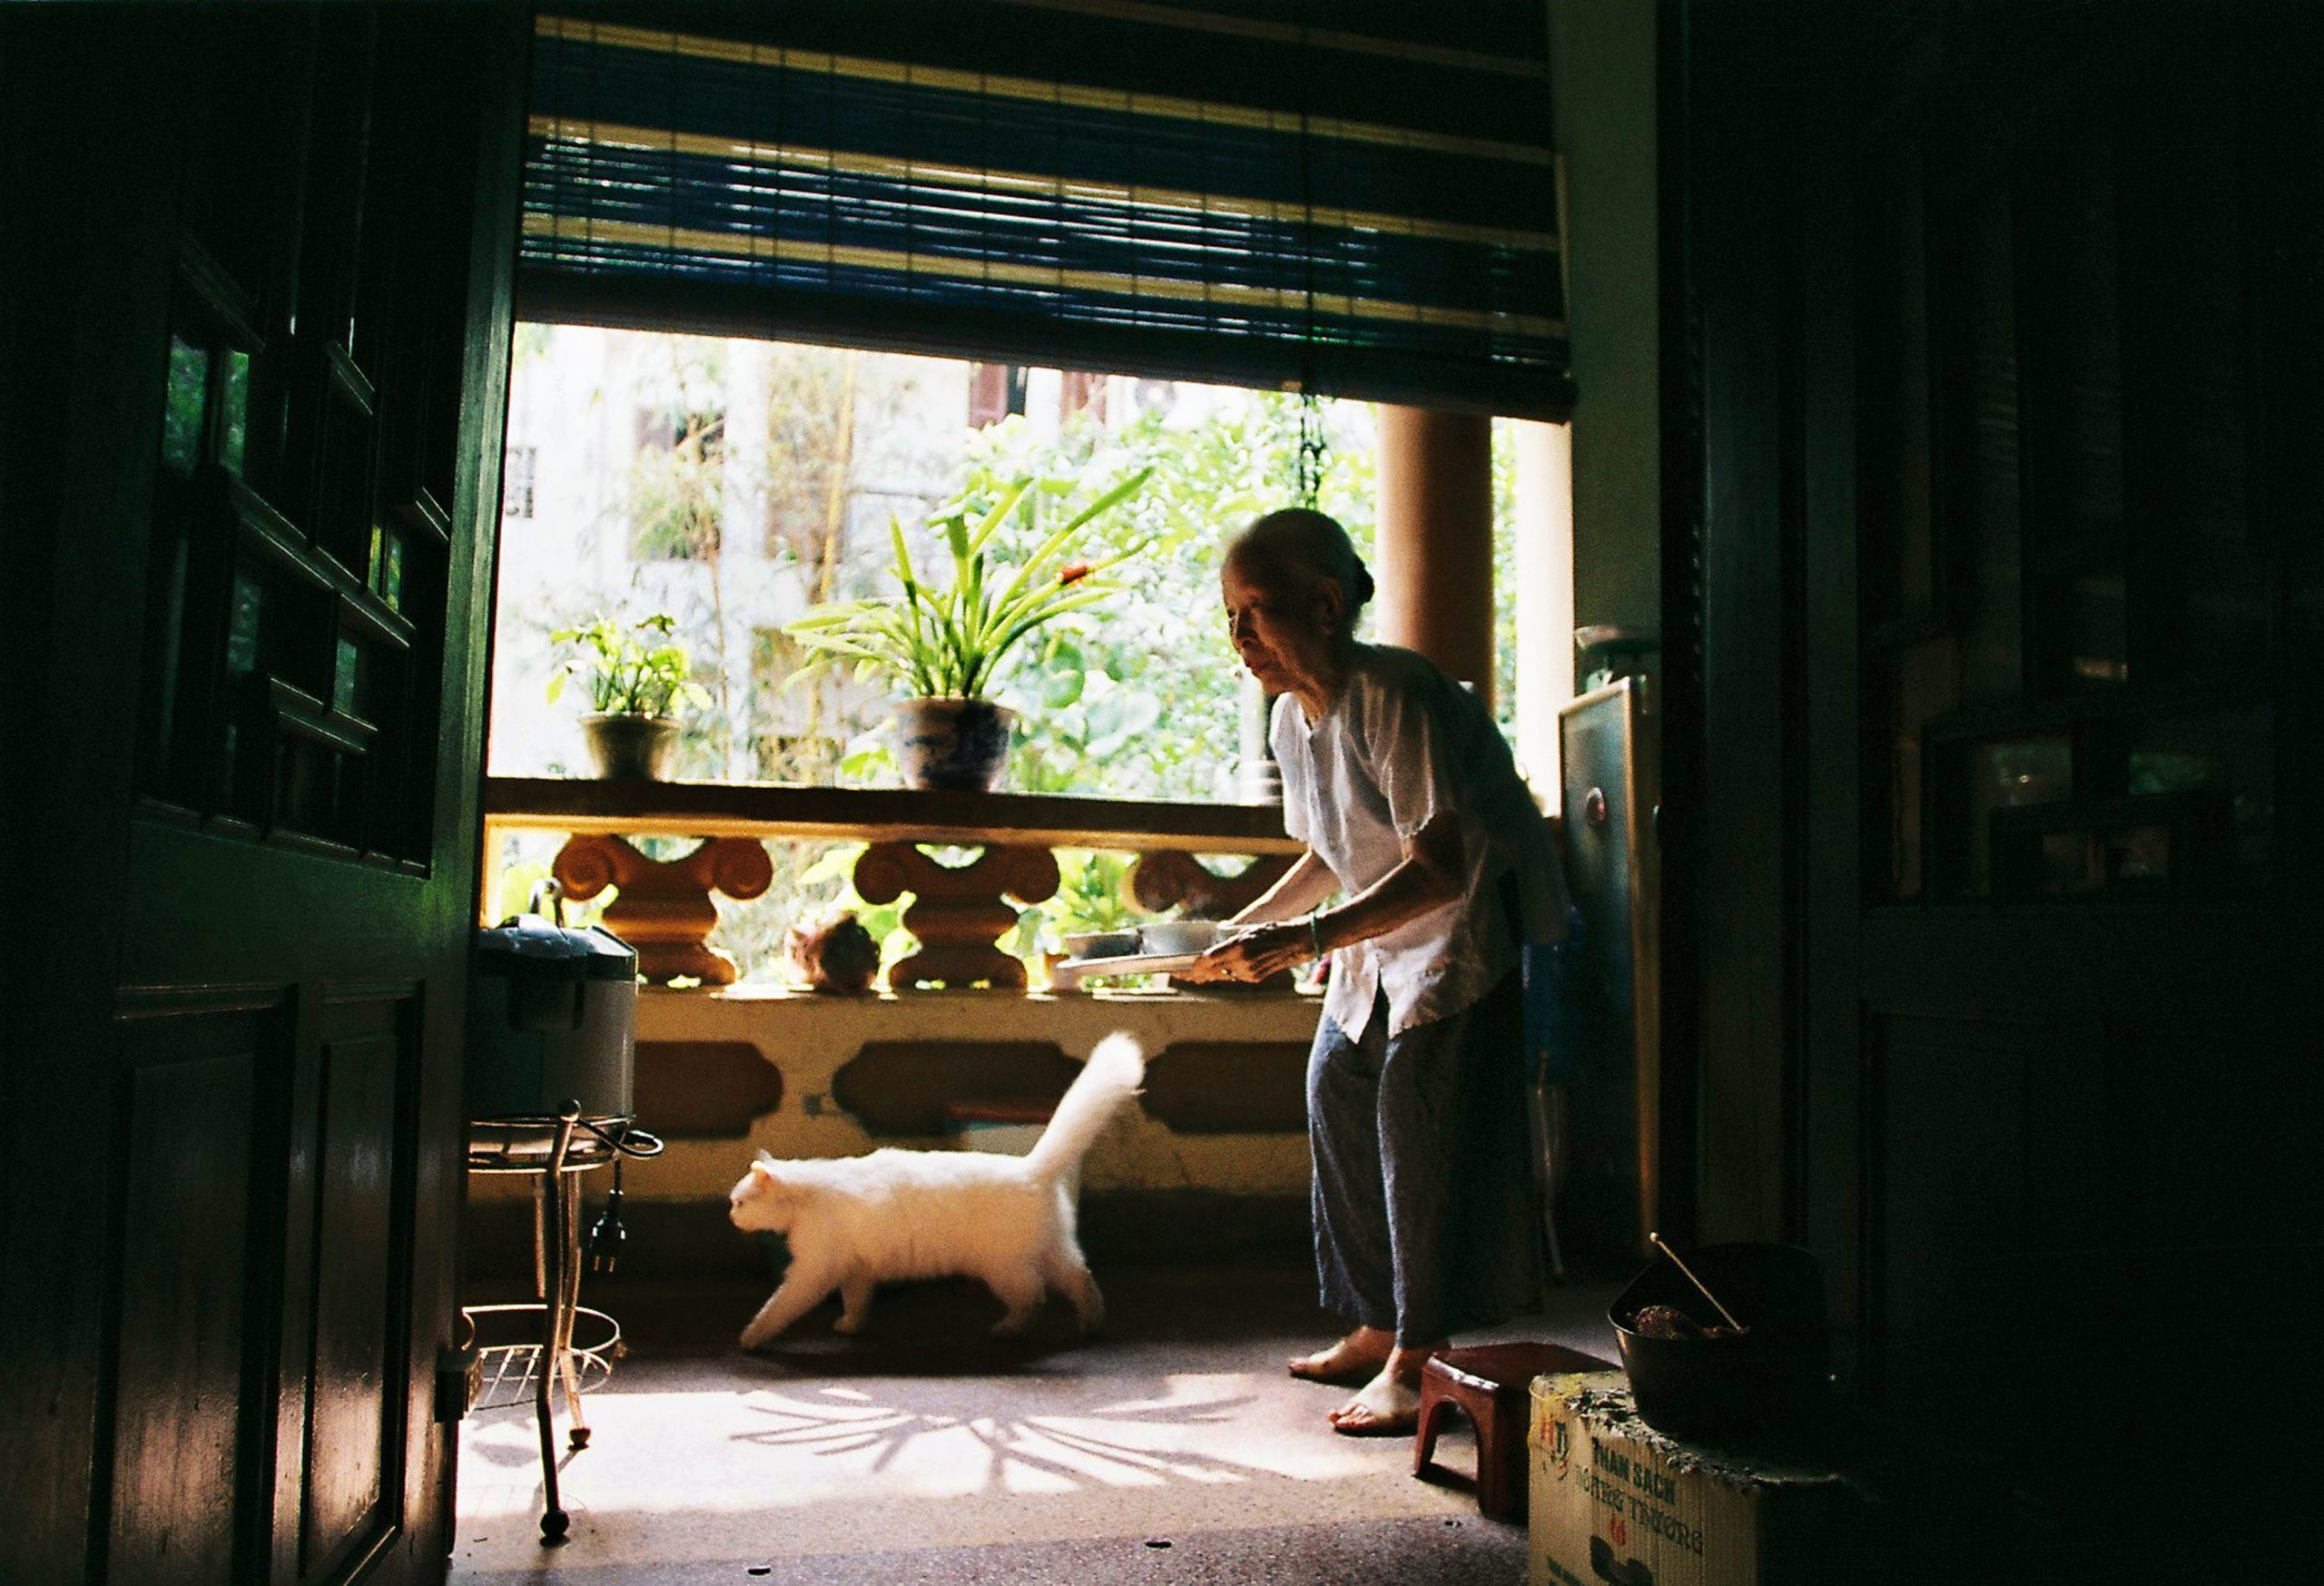 Color photo by Maika Elan from Inside Hanoi. Elderly woman and cat.